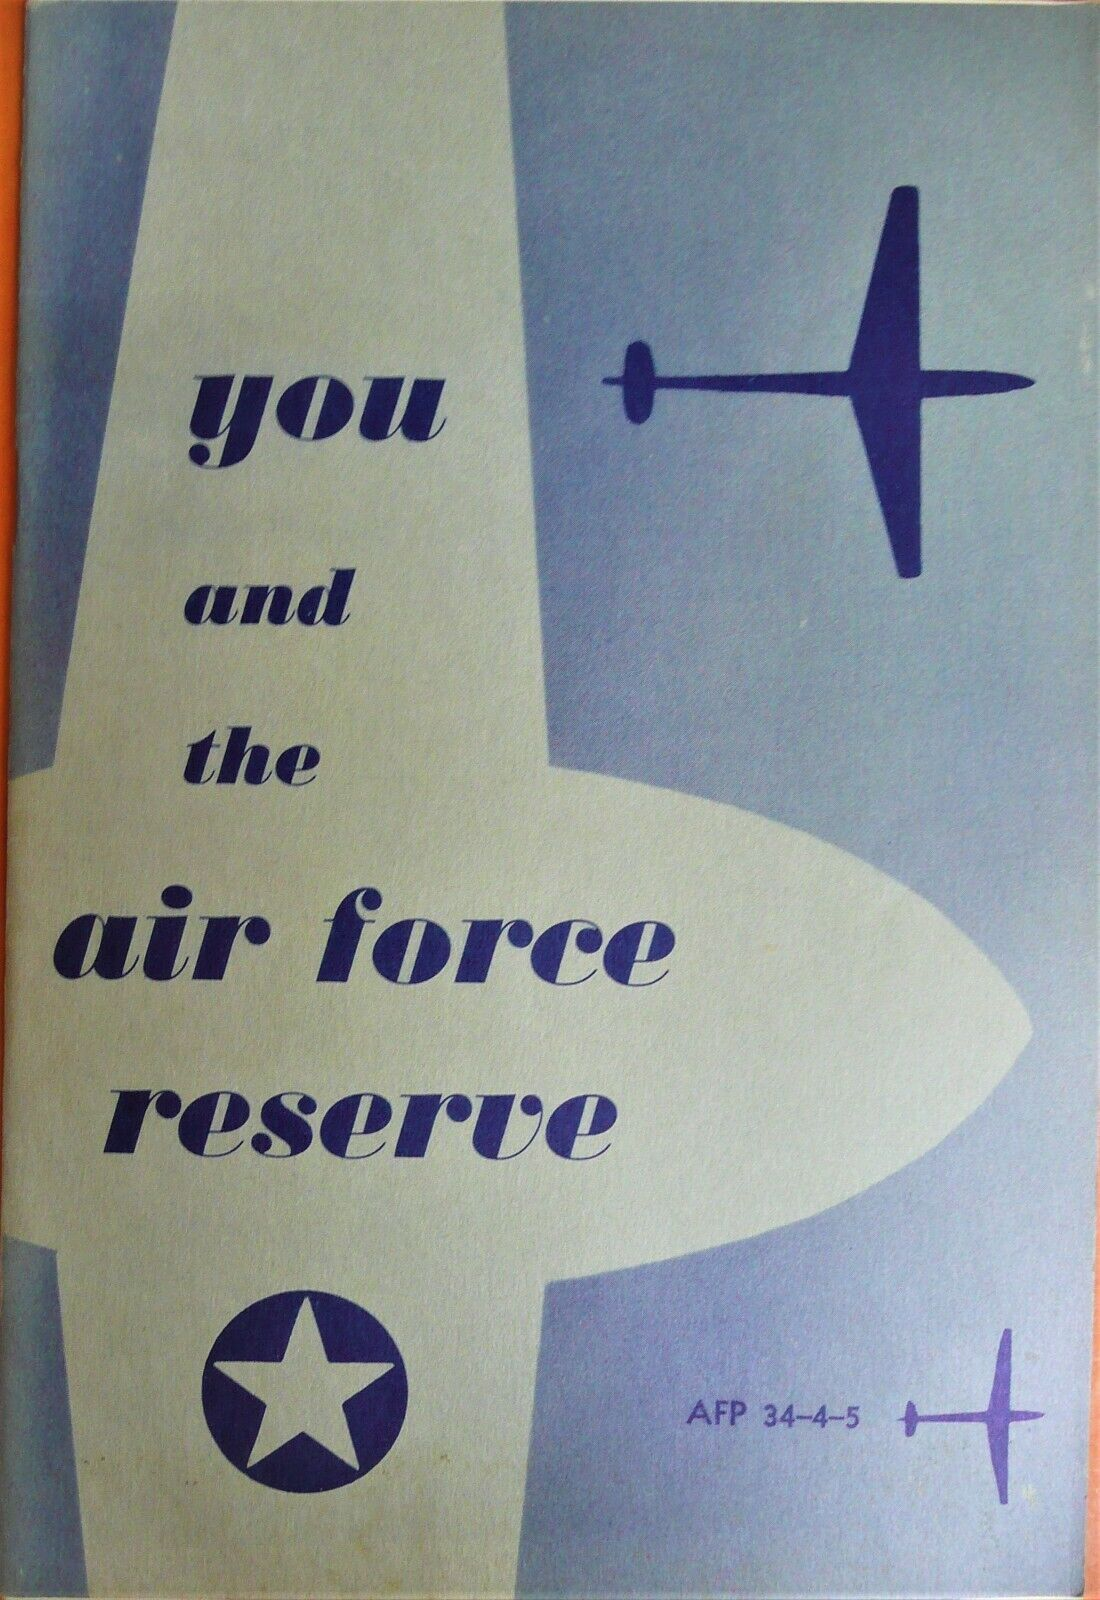 1954 Air Force Recruitment Pamphlet Promoting Reserve Service Training Privilege